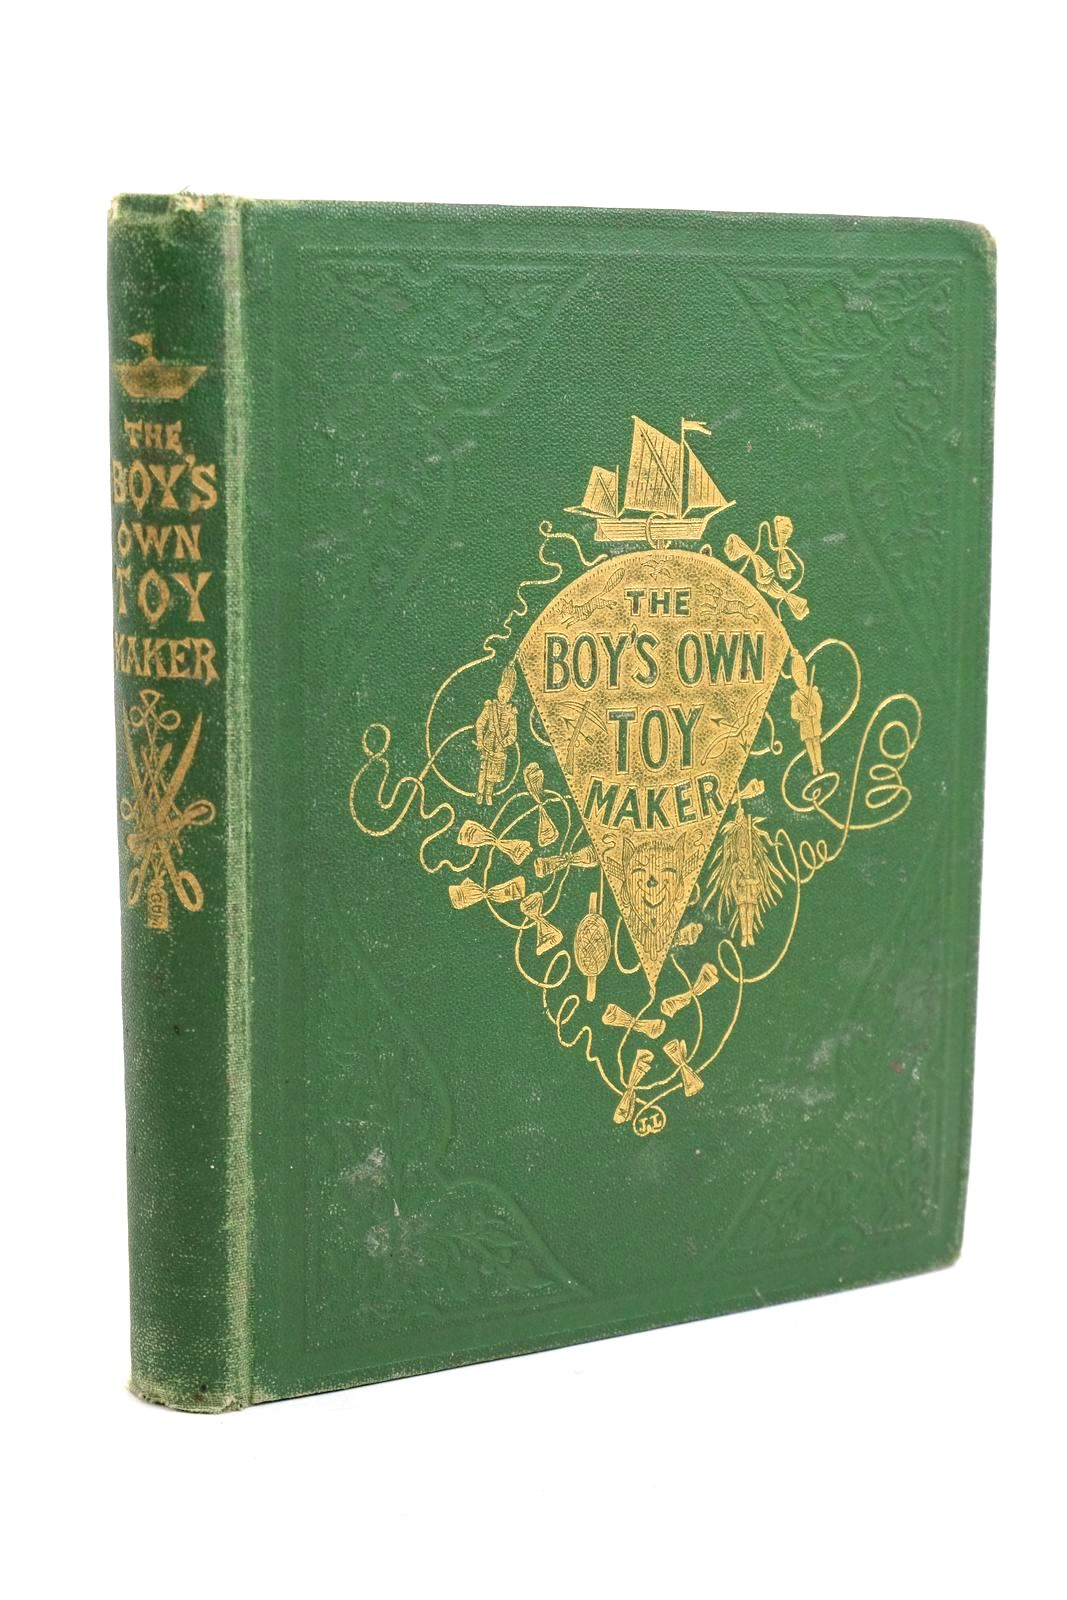 Photo of THE BOY'S OWN TOY-MAKER written by Landells, E. published by Griffith and Farran (STOCK CODE: 1321133)  for sale by Stella & Rose's Books